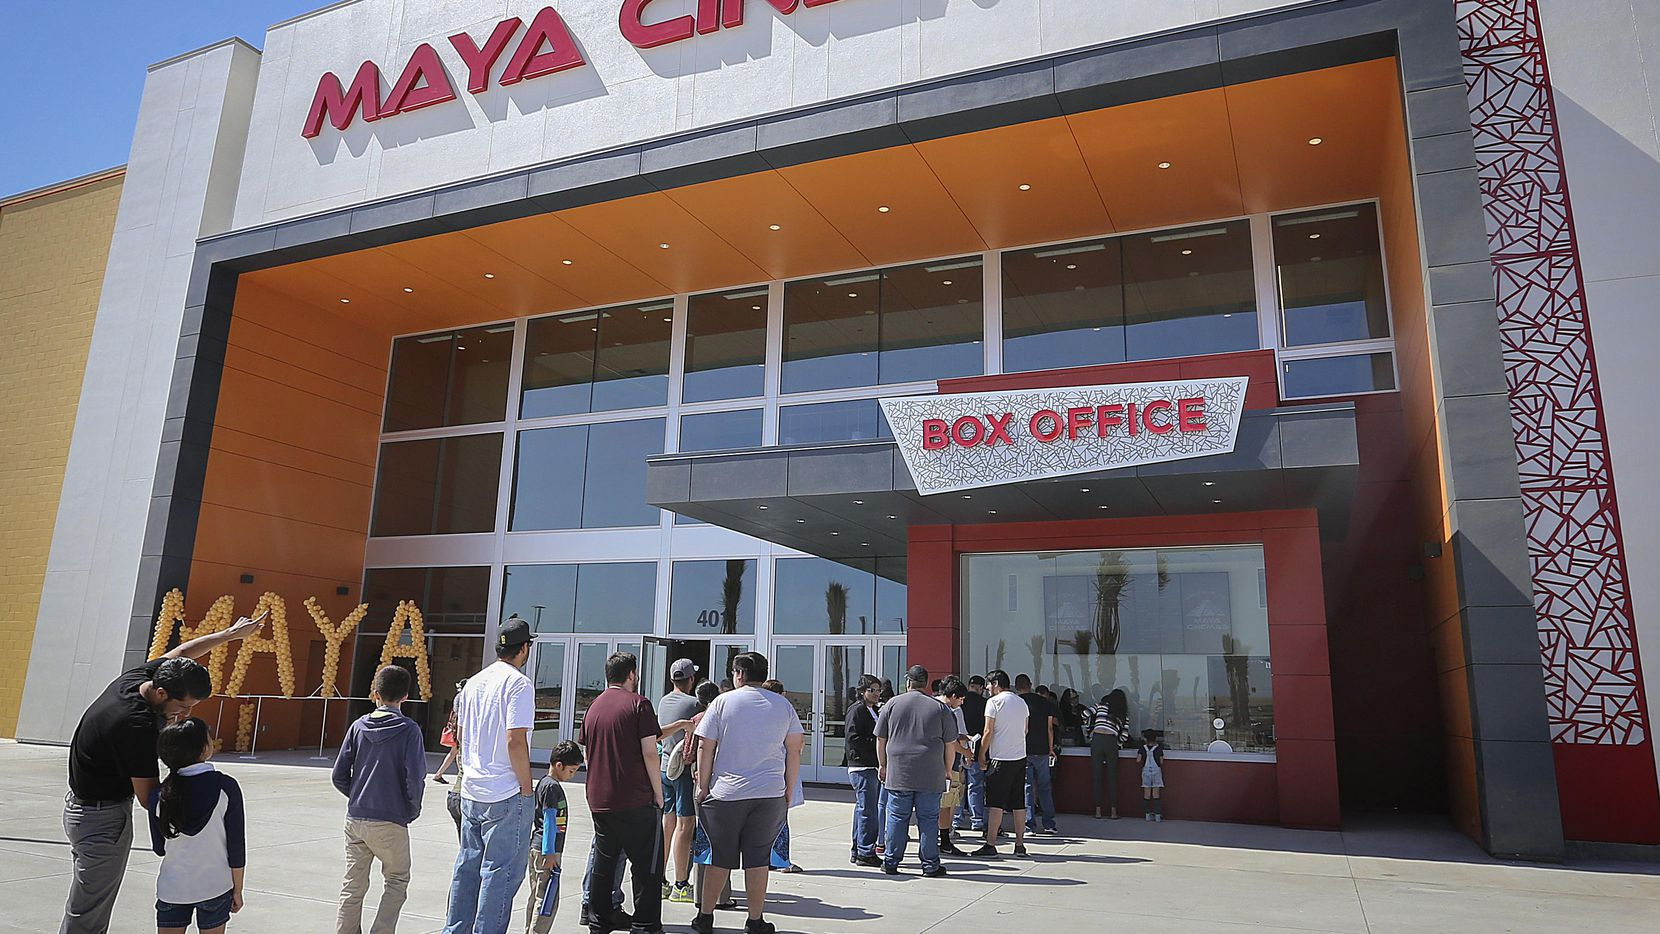 El complejo de Maya Cinemas Theater en Delano, California.(AP)